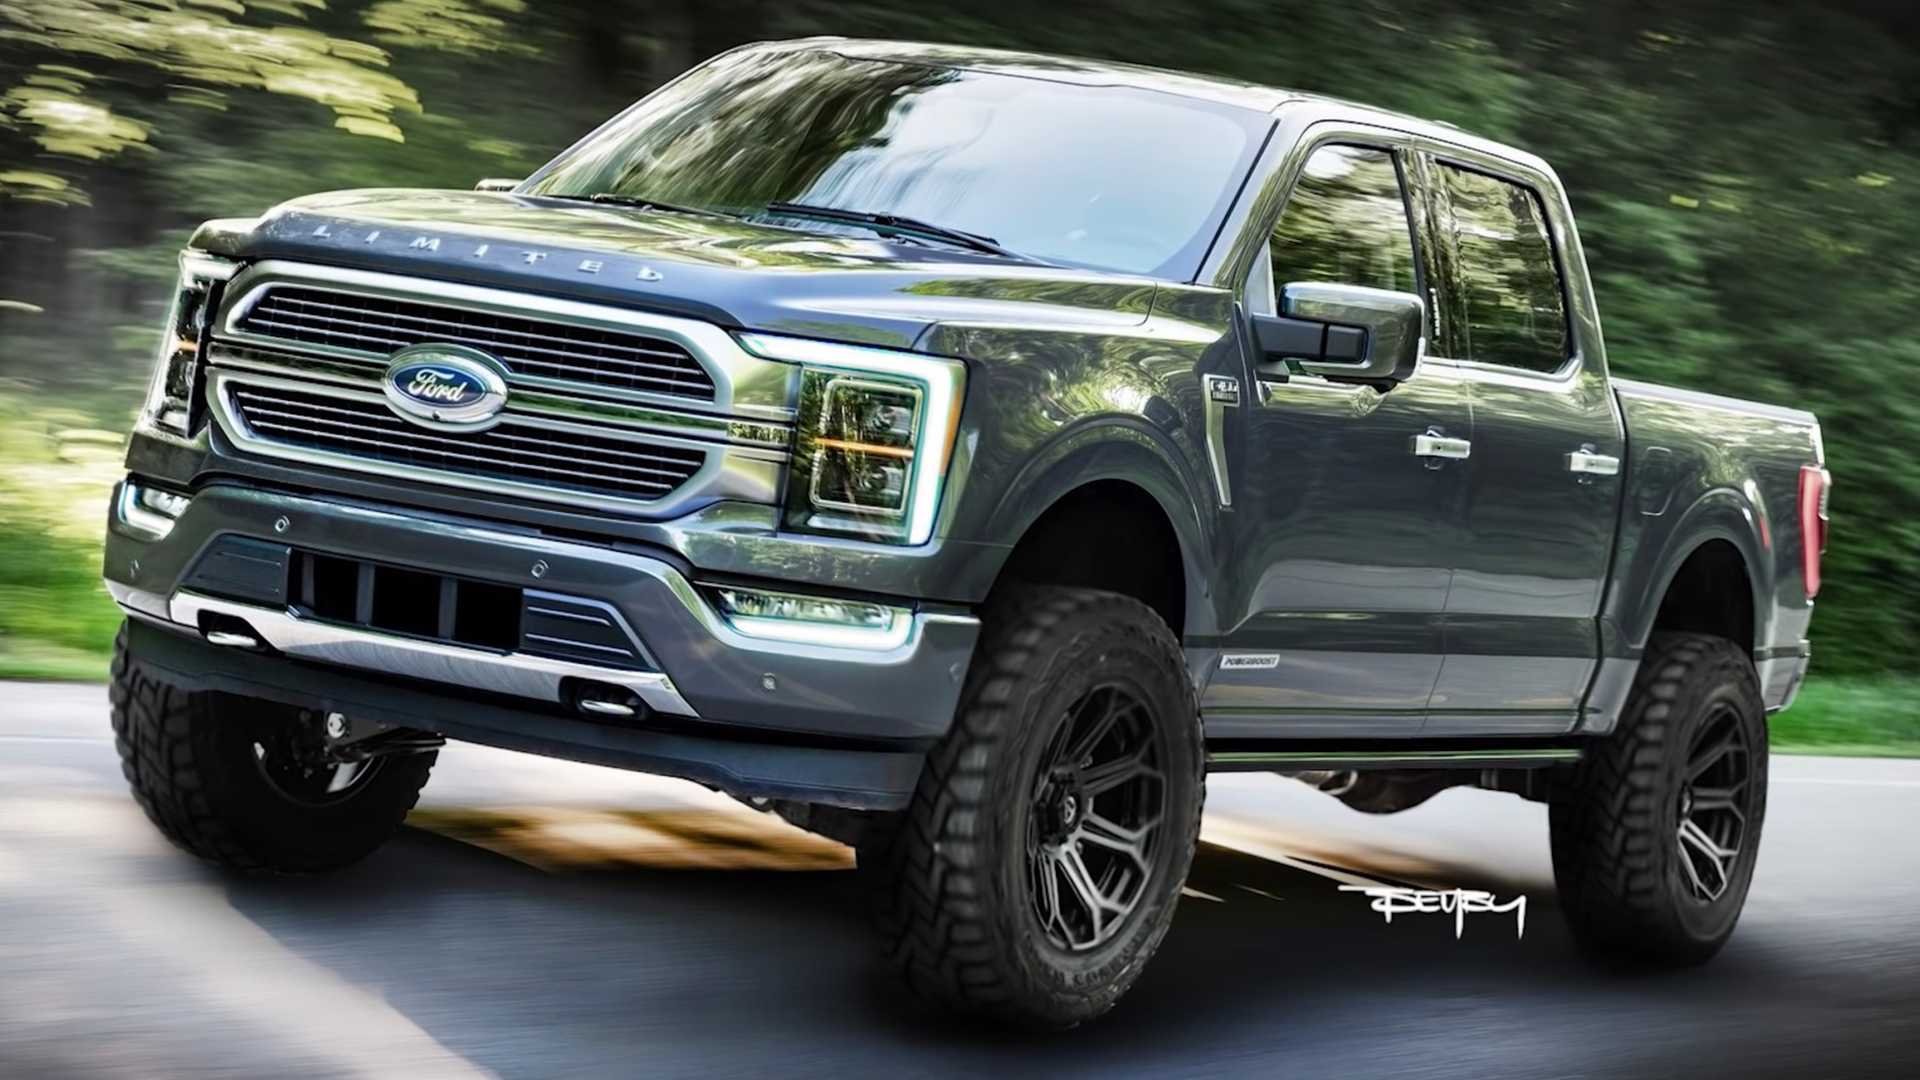 2021 ford f150 rendering gives new pickup an attractive